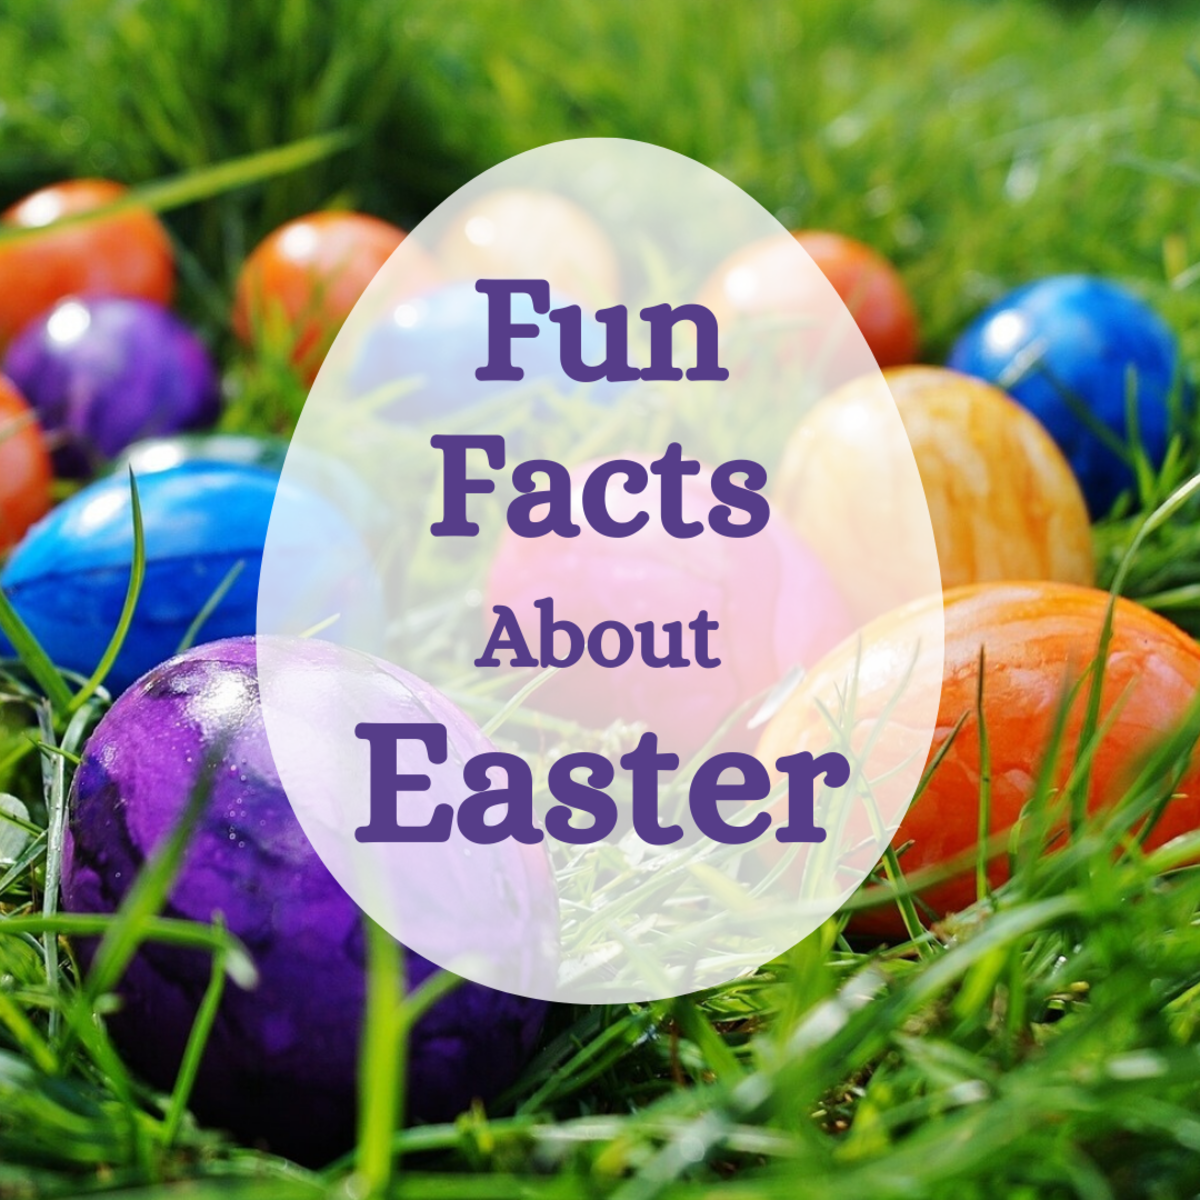 10 Fun and Interesting Facts About Easter for Kids